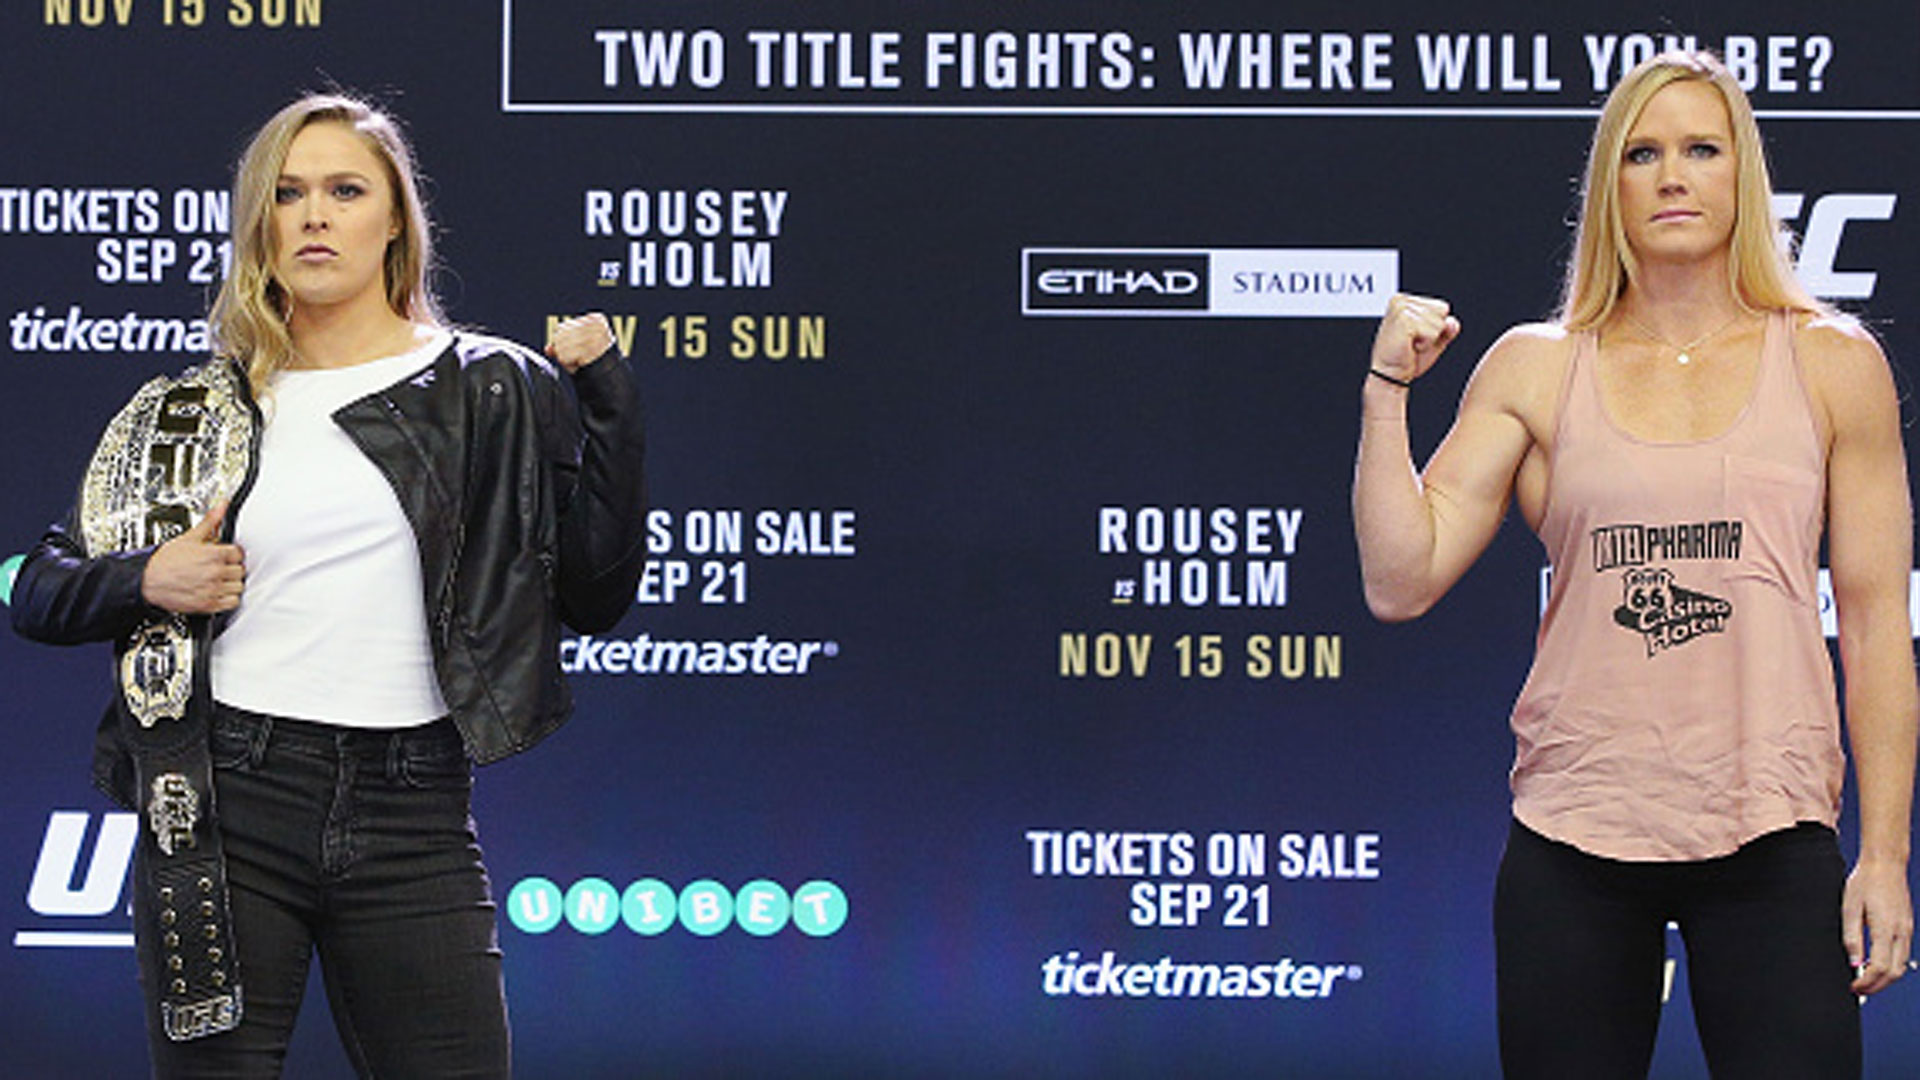 Ufc 193 preview: ronda rousey vs. holly holm.